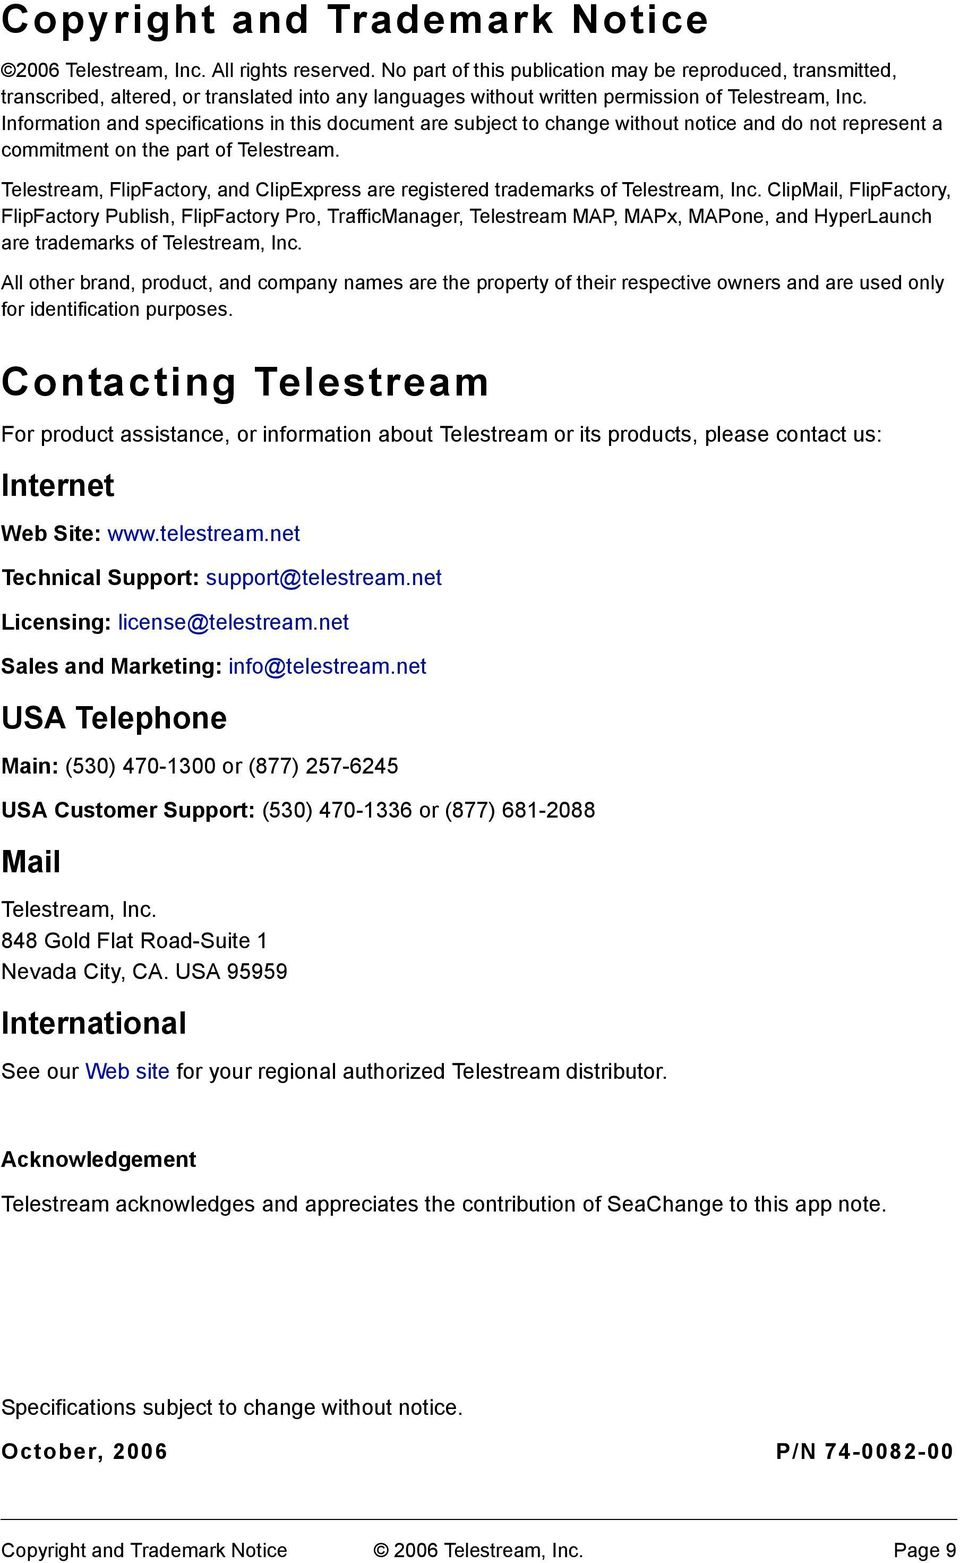 Information and specifications in this document are subject to change without notice and do not represent a commitment on the part of Telestream.